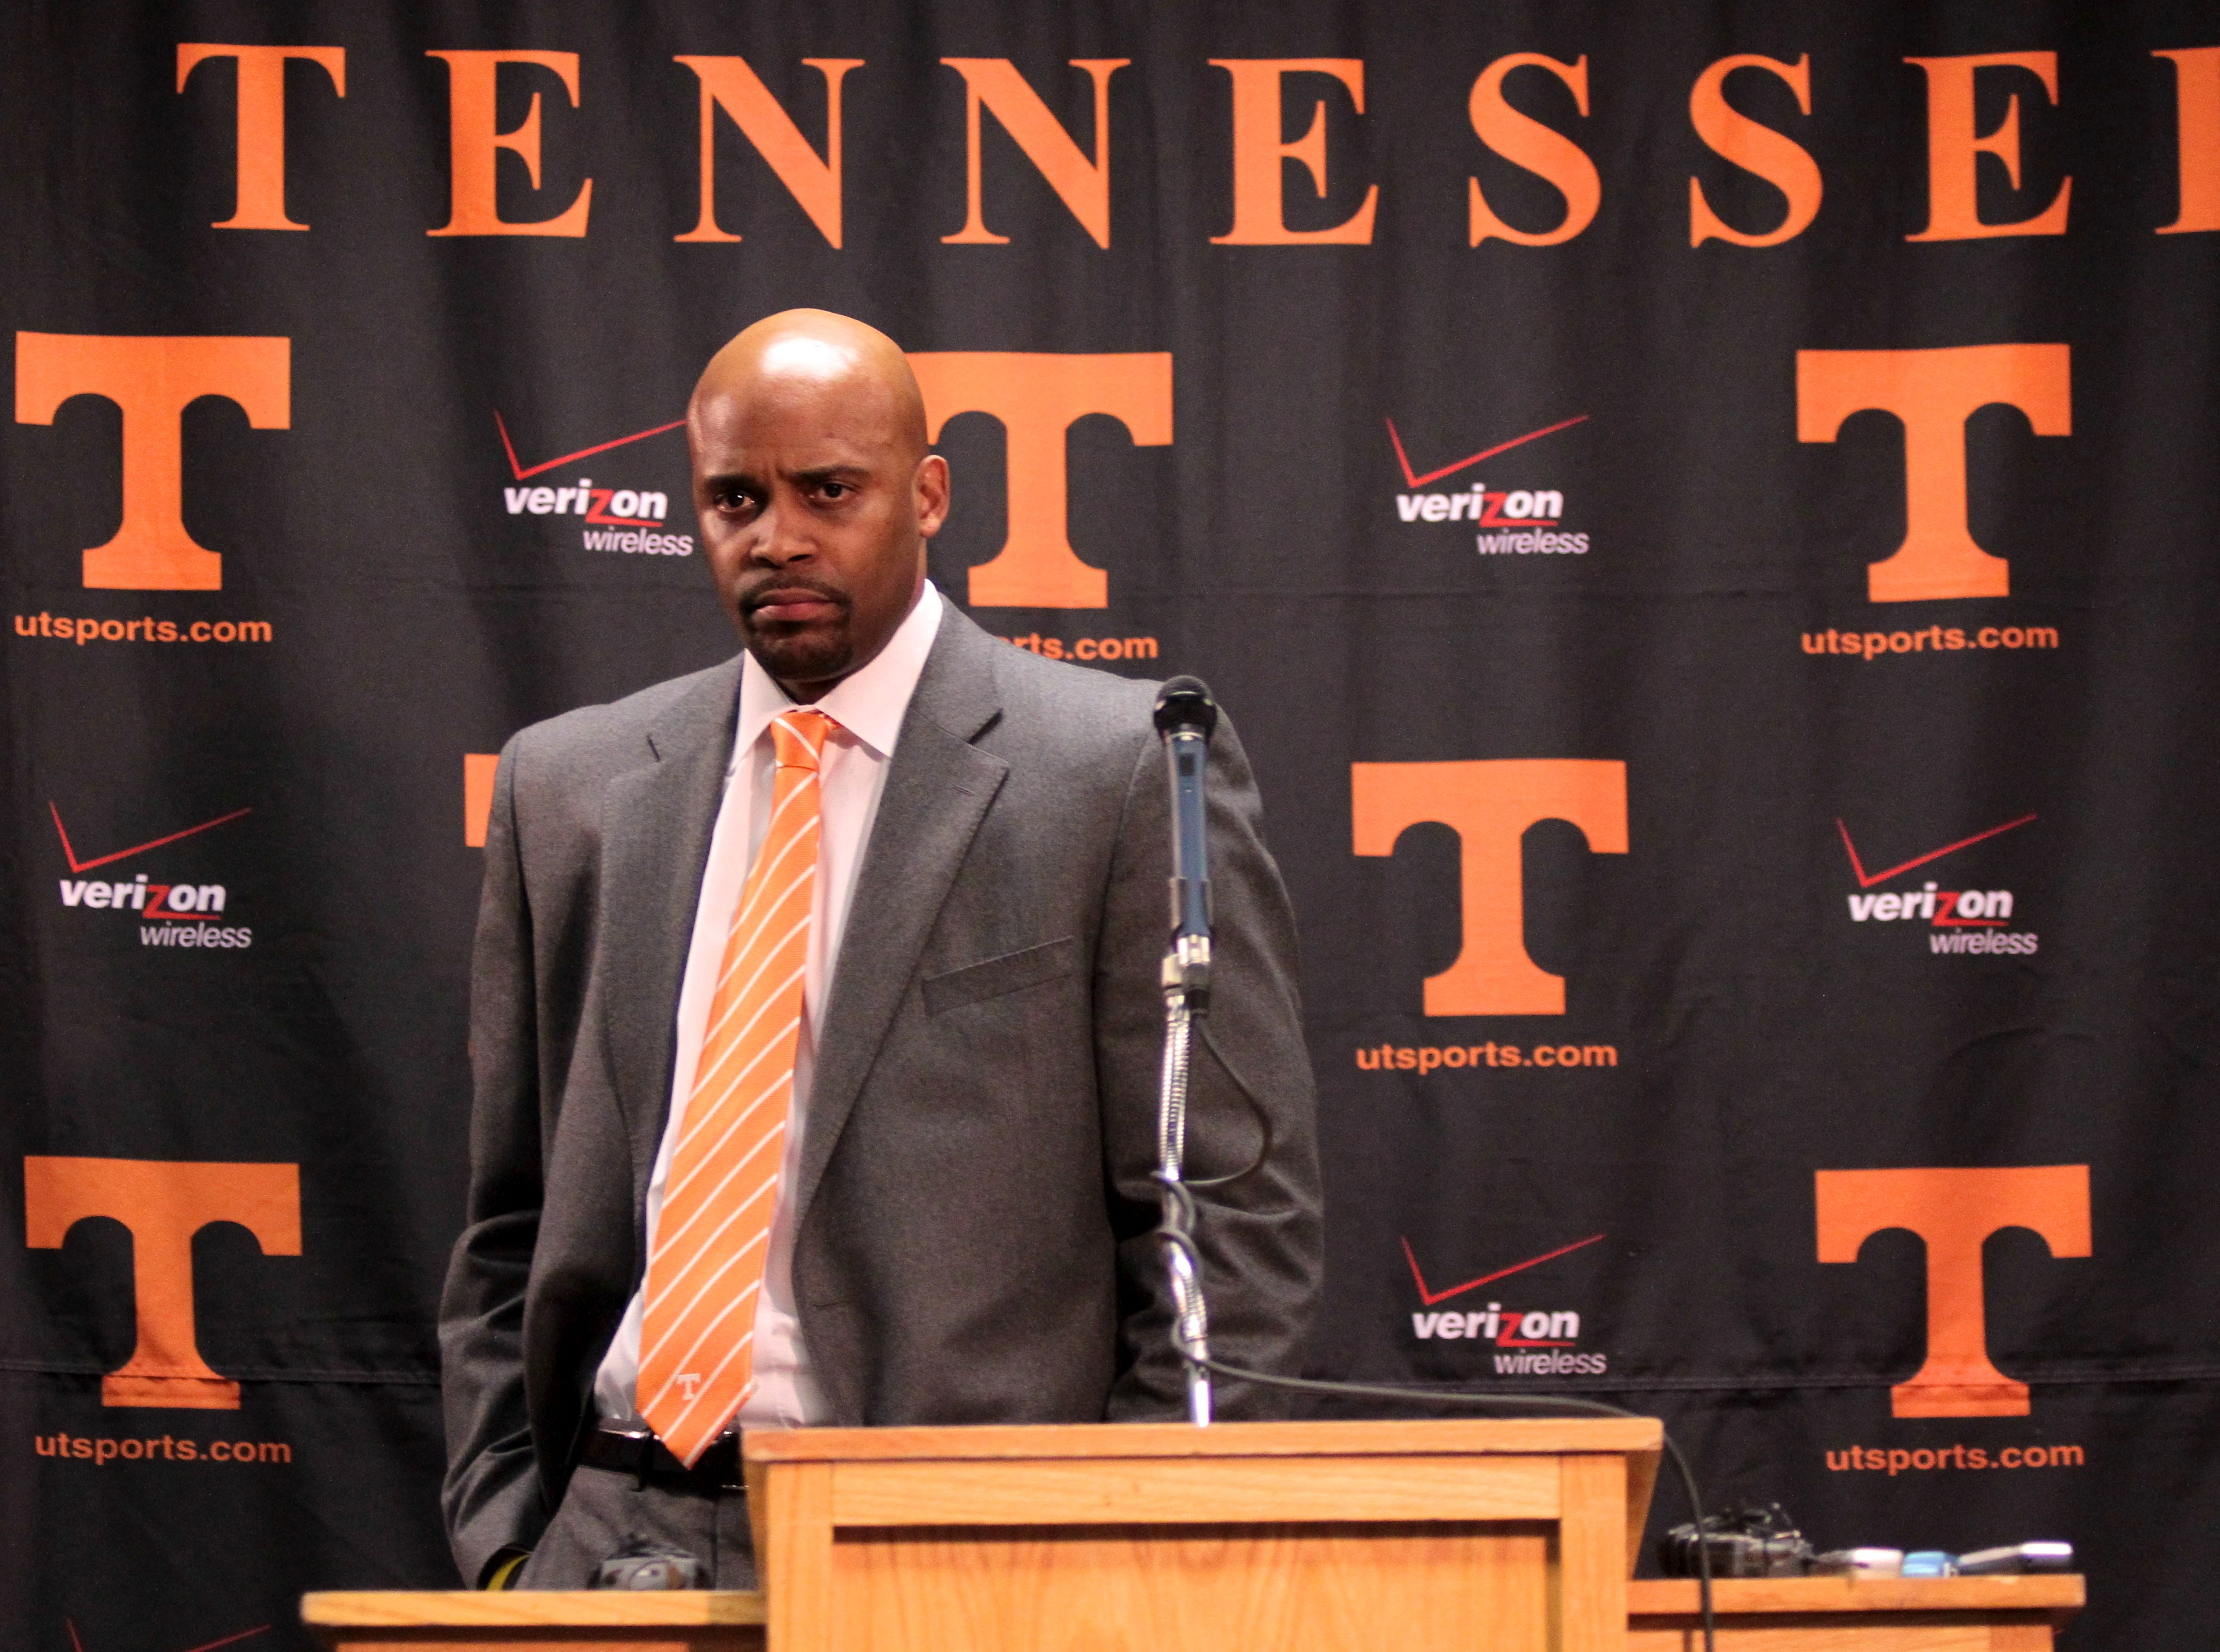 Cuonzo Martin speaks during his introduction as the new University of Tennessee men's basketball coach on Monday, March 28, 2010.